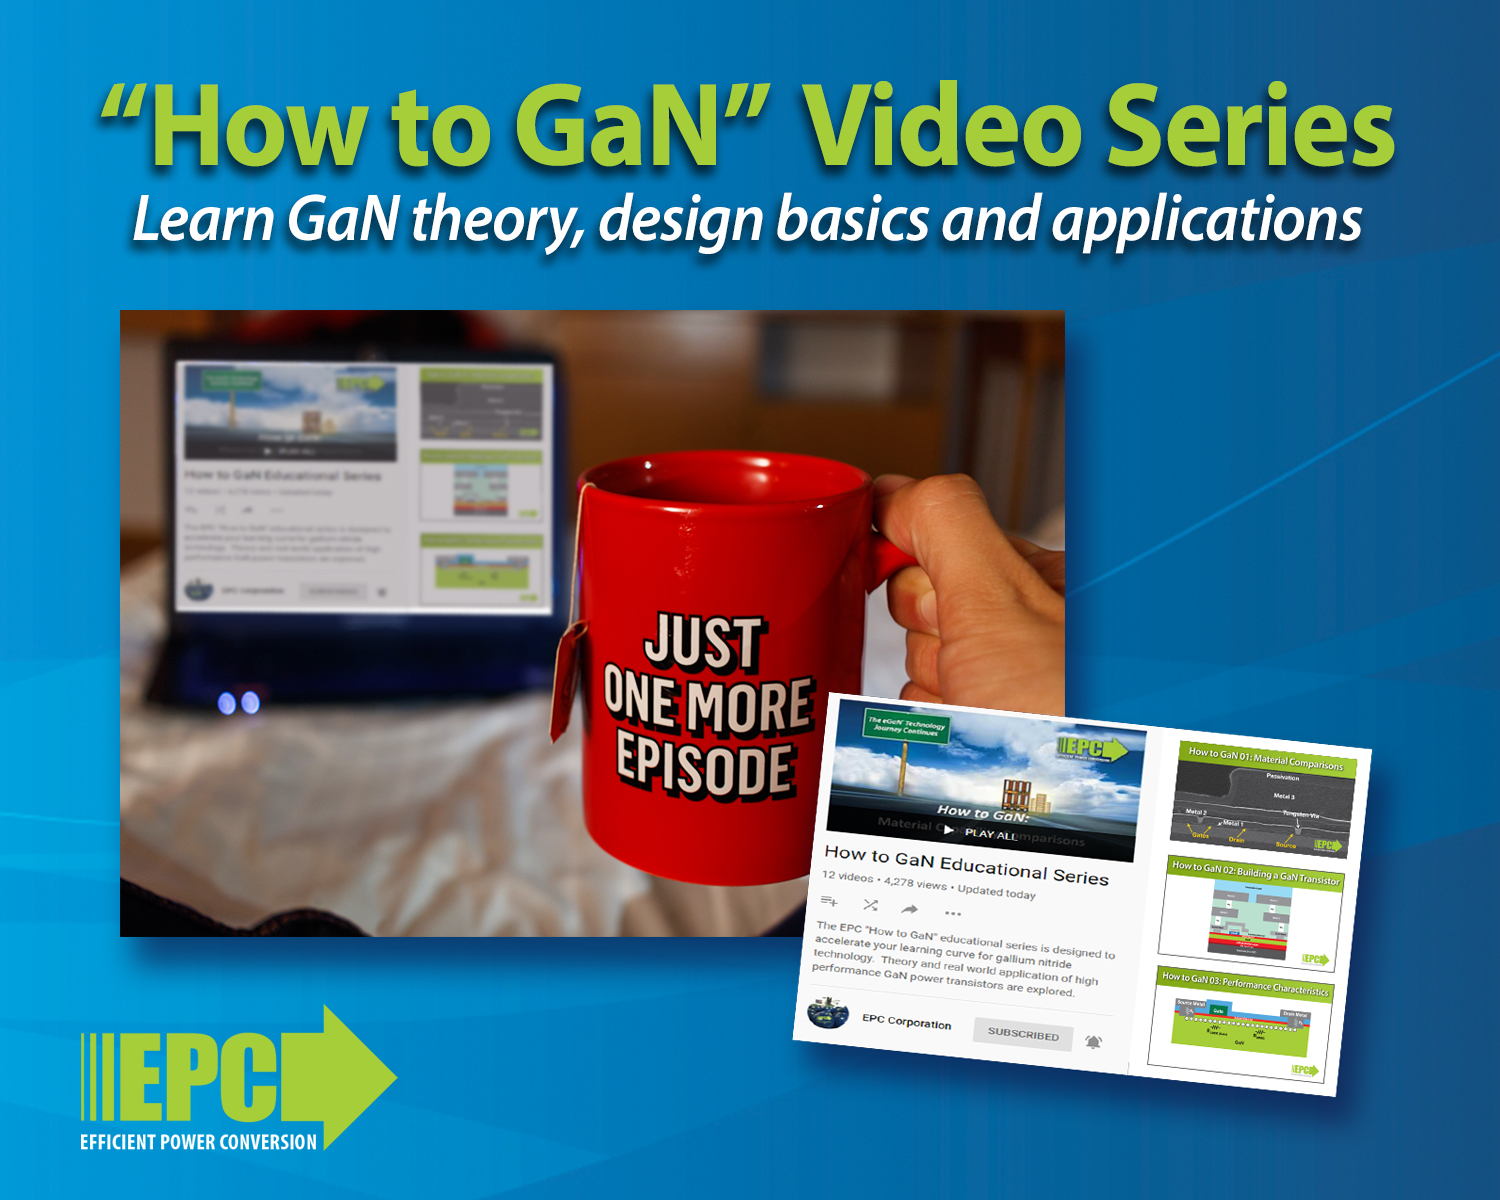 How to Gan Video Series